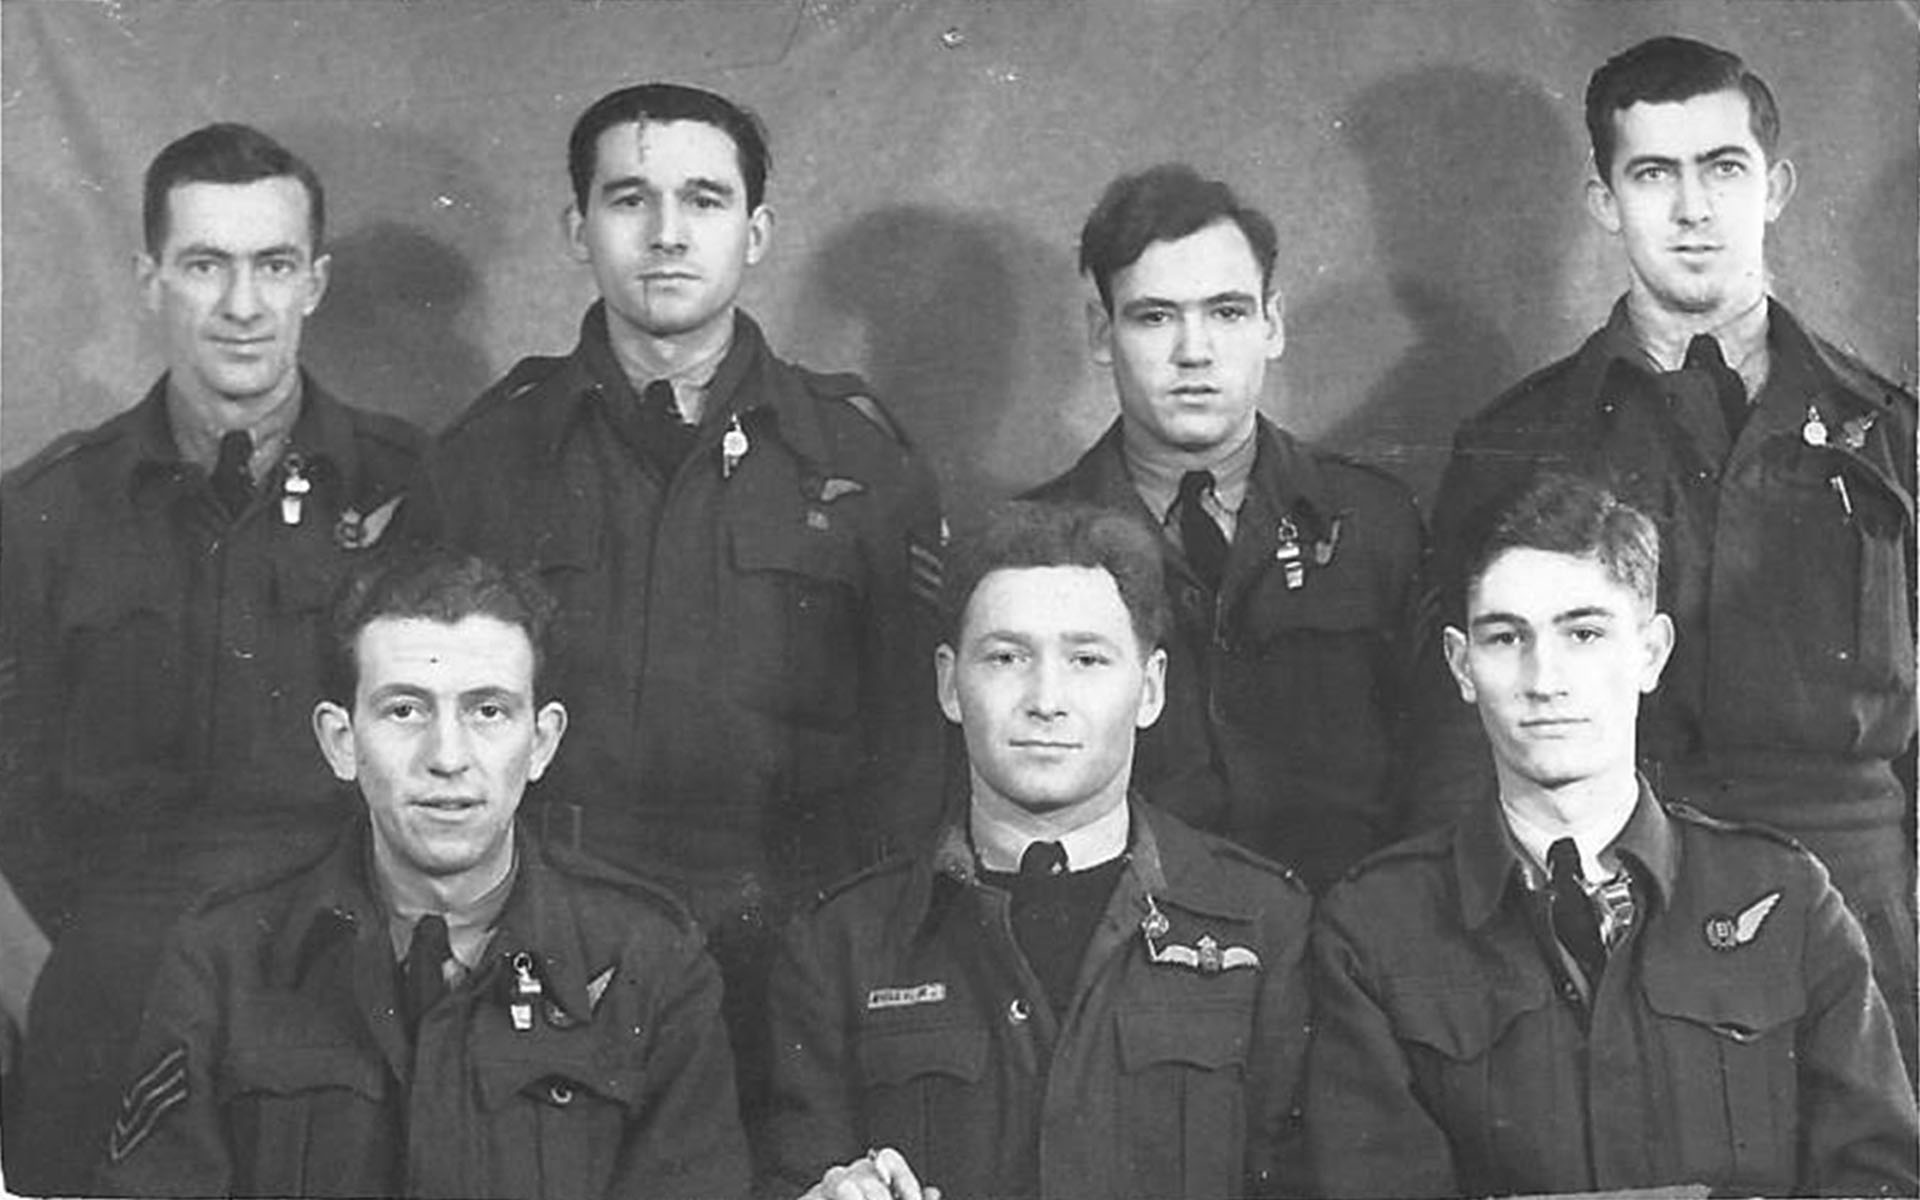 Desmond Lush with his 625 Squadron crewmates